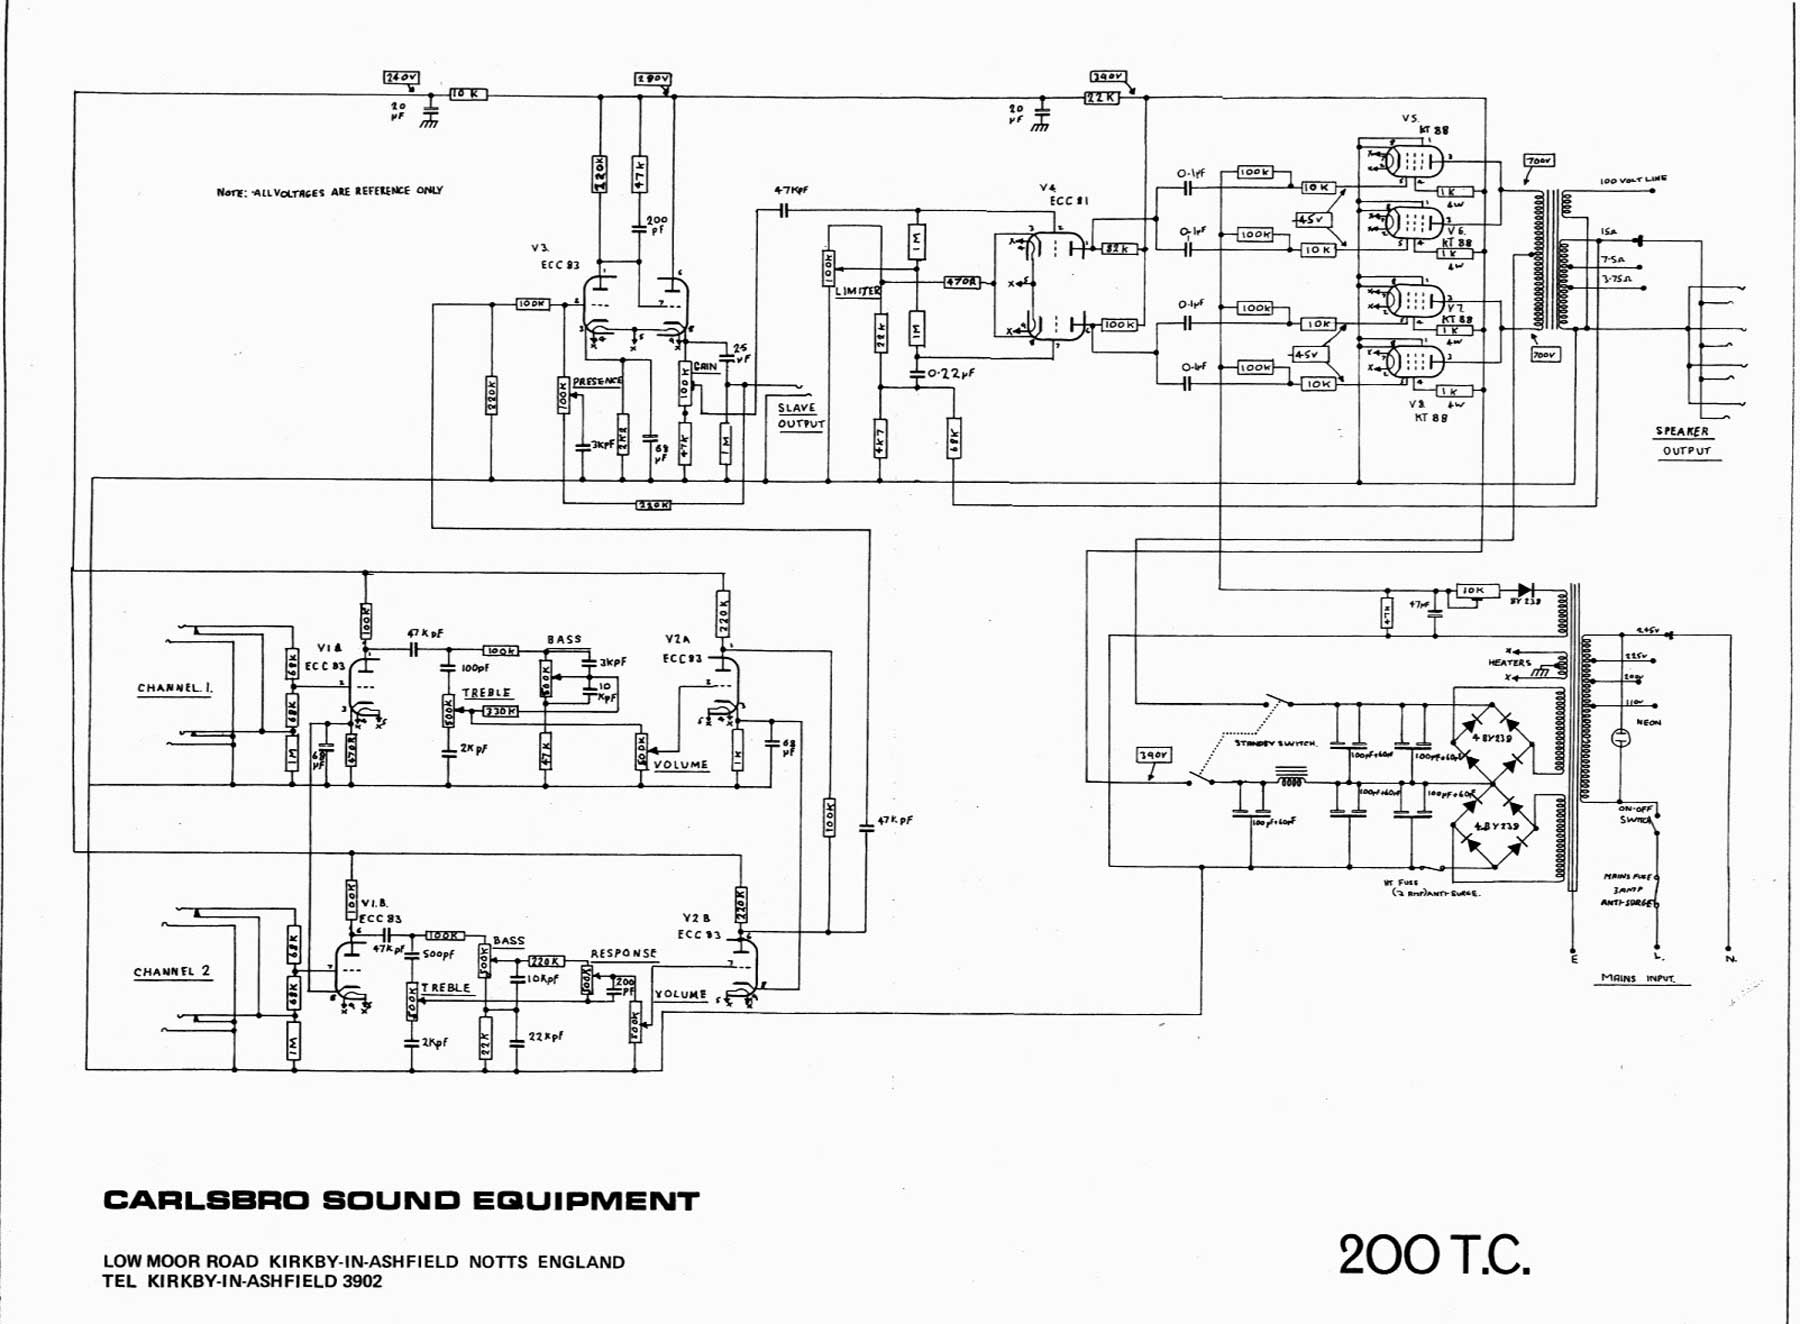 Carlsbro 200 Tc Amp Schematic At T Phone Wiring Diagram Return To Carslbro Diagrams Page